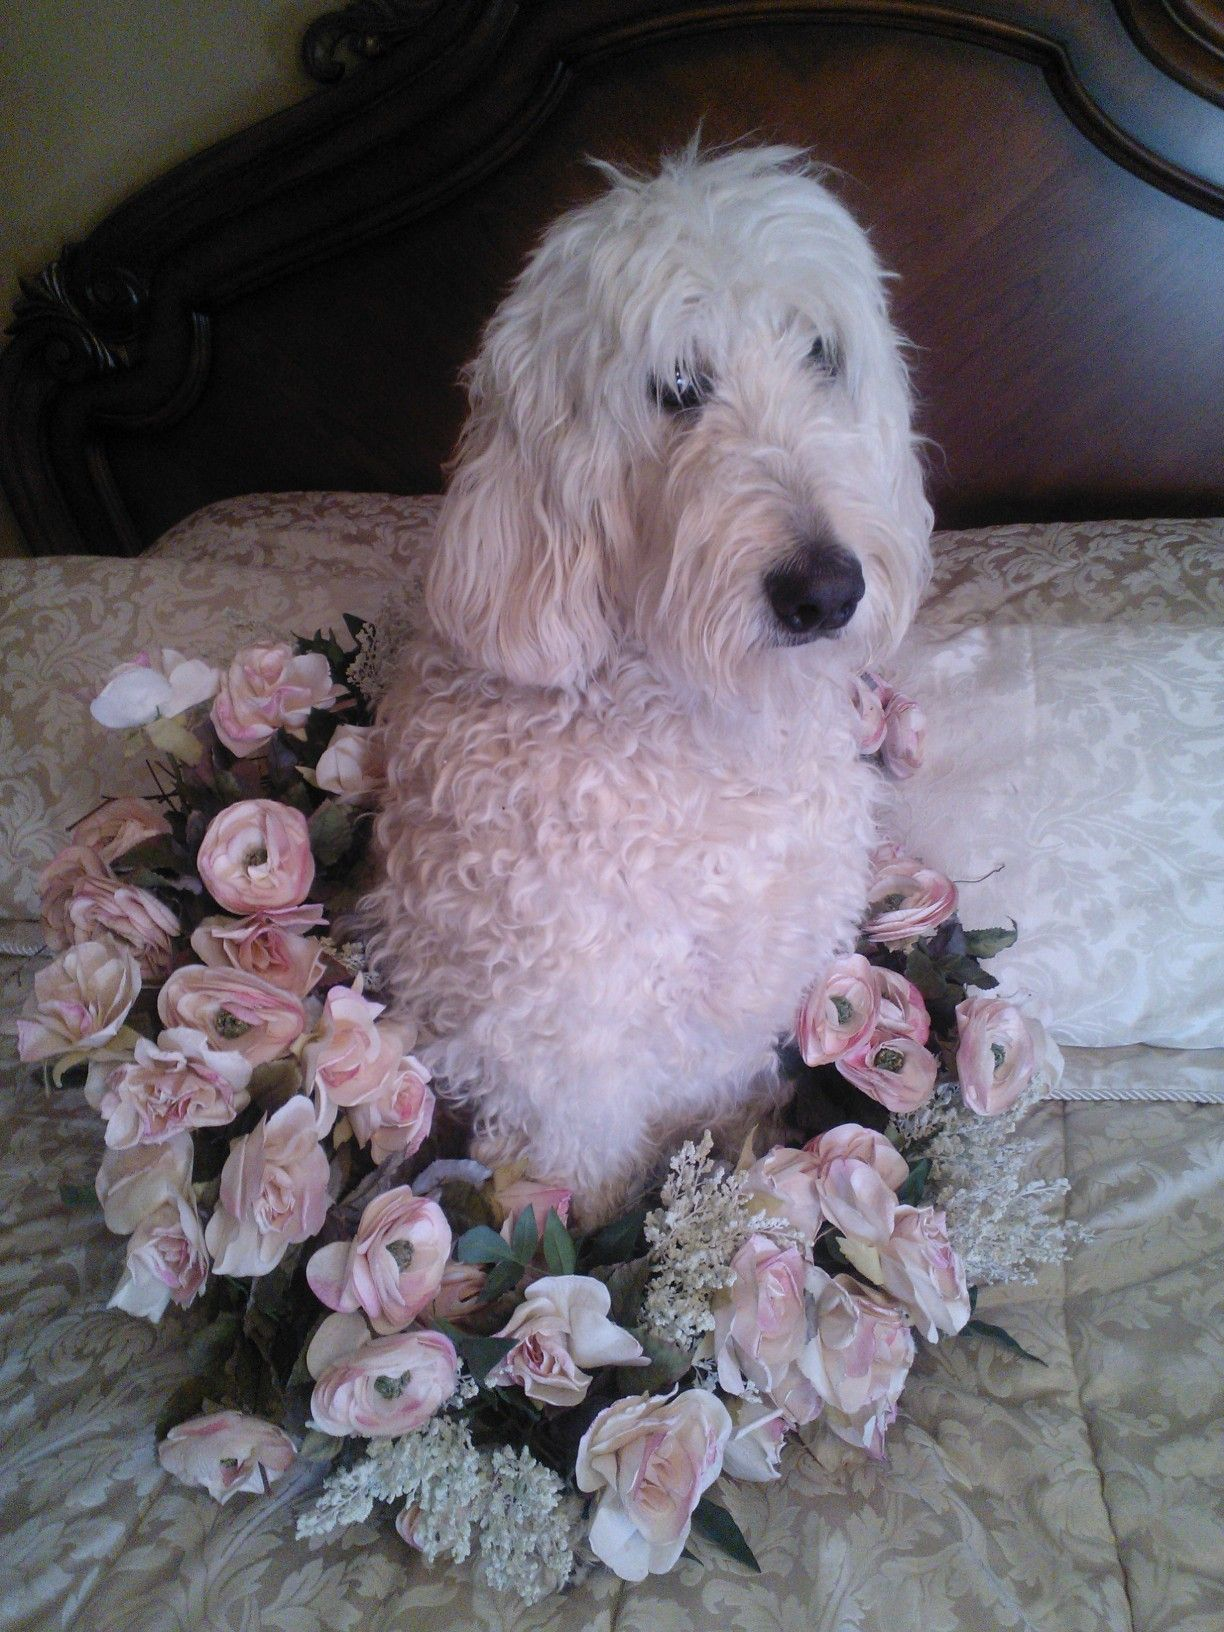 Bentley is now 8 1/2 yrs old and the last time he was in the center of this wreath was when I took a photo of him at 9 wks old. How he has grown! He is a Standard F1, 85 lb. Goldendoodle. 2-15-15